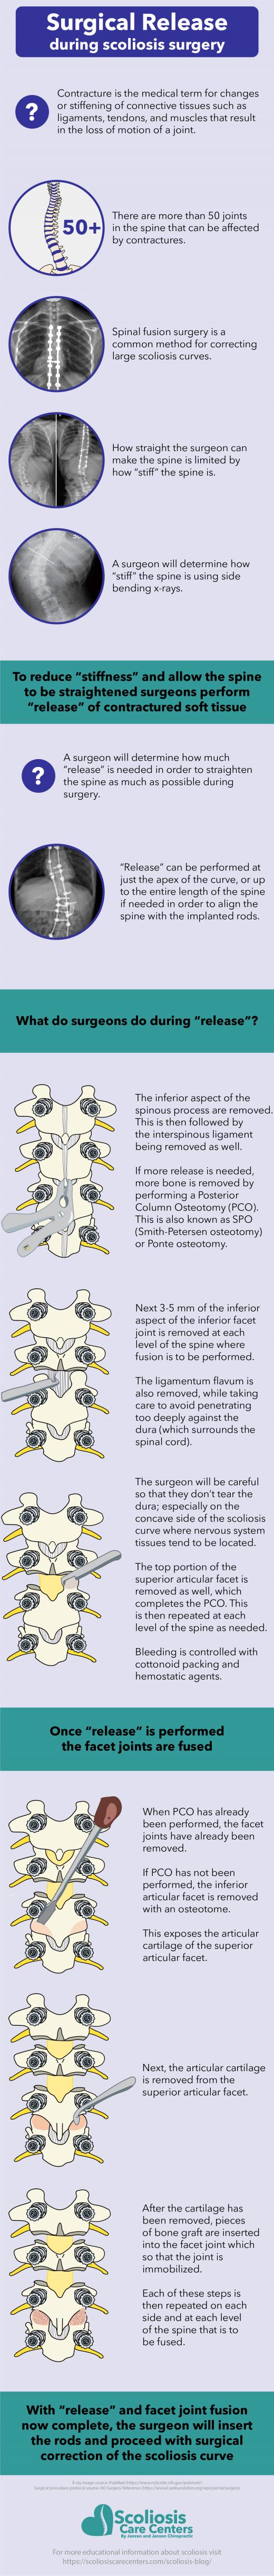 Infographic detailing surgical release of contractured soft tissue and facet joint fusion during scoliosis spinal fusion surgery